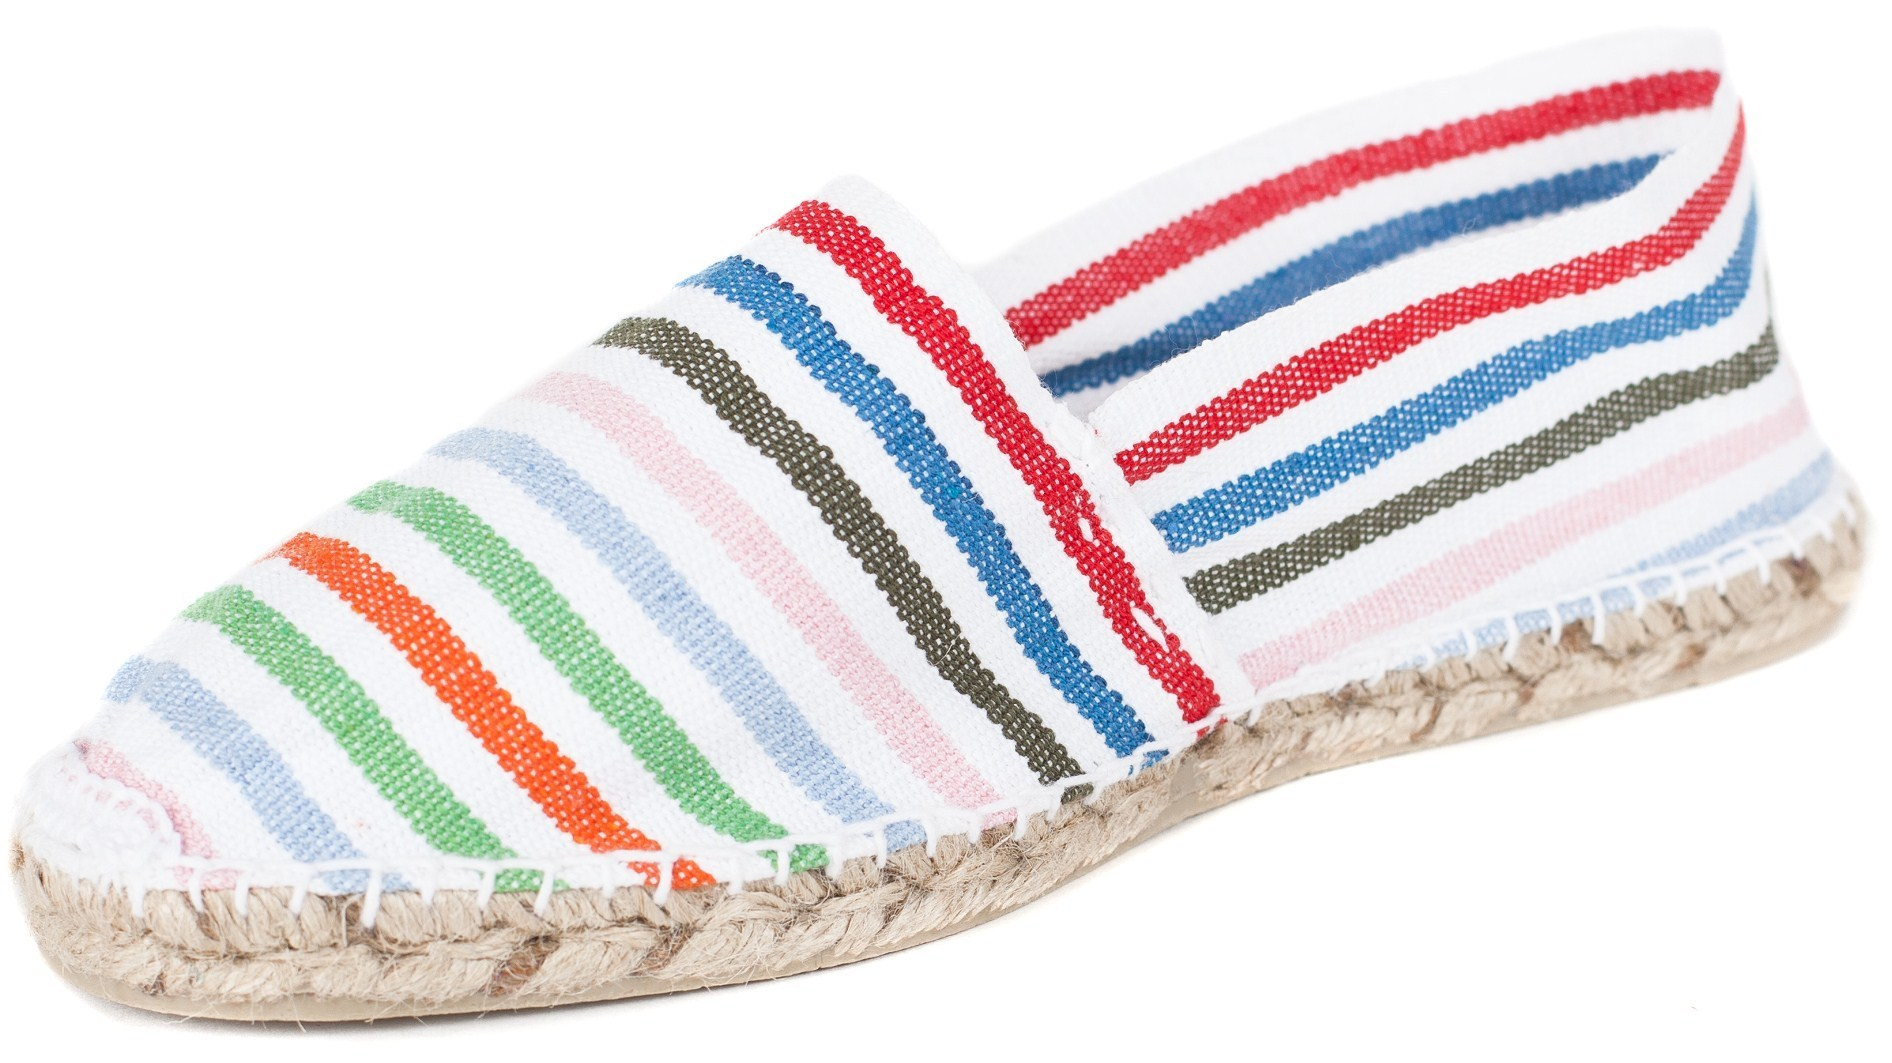 The Summer We Bunt With the Handmade Espadrilles